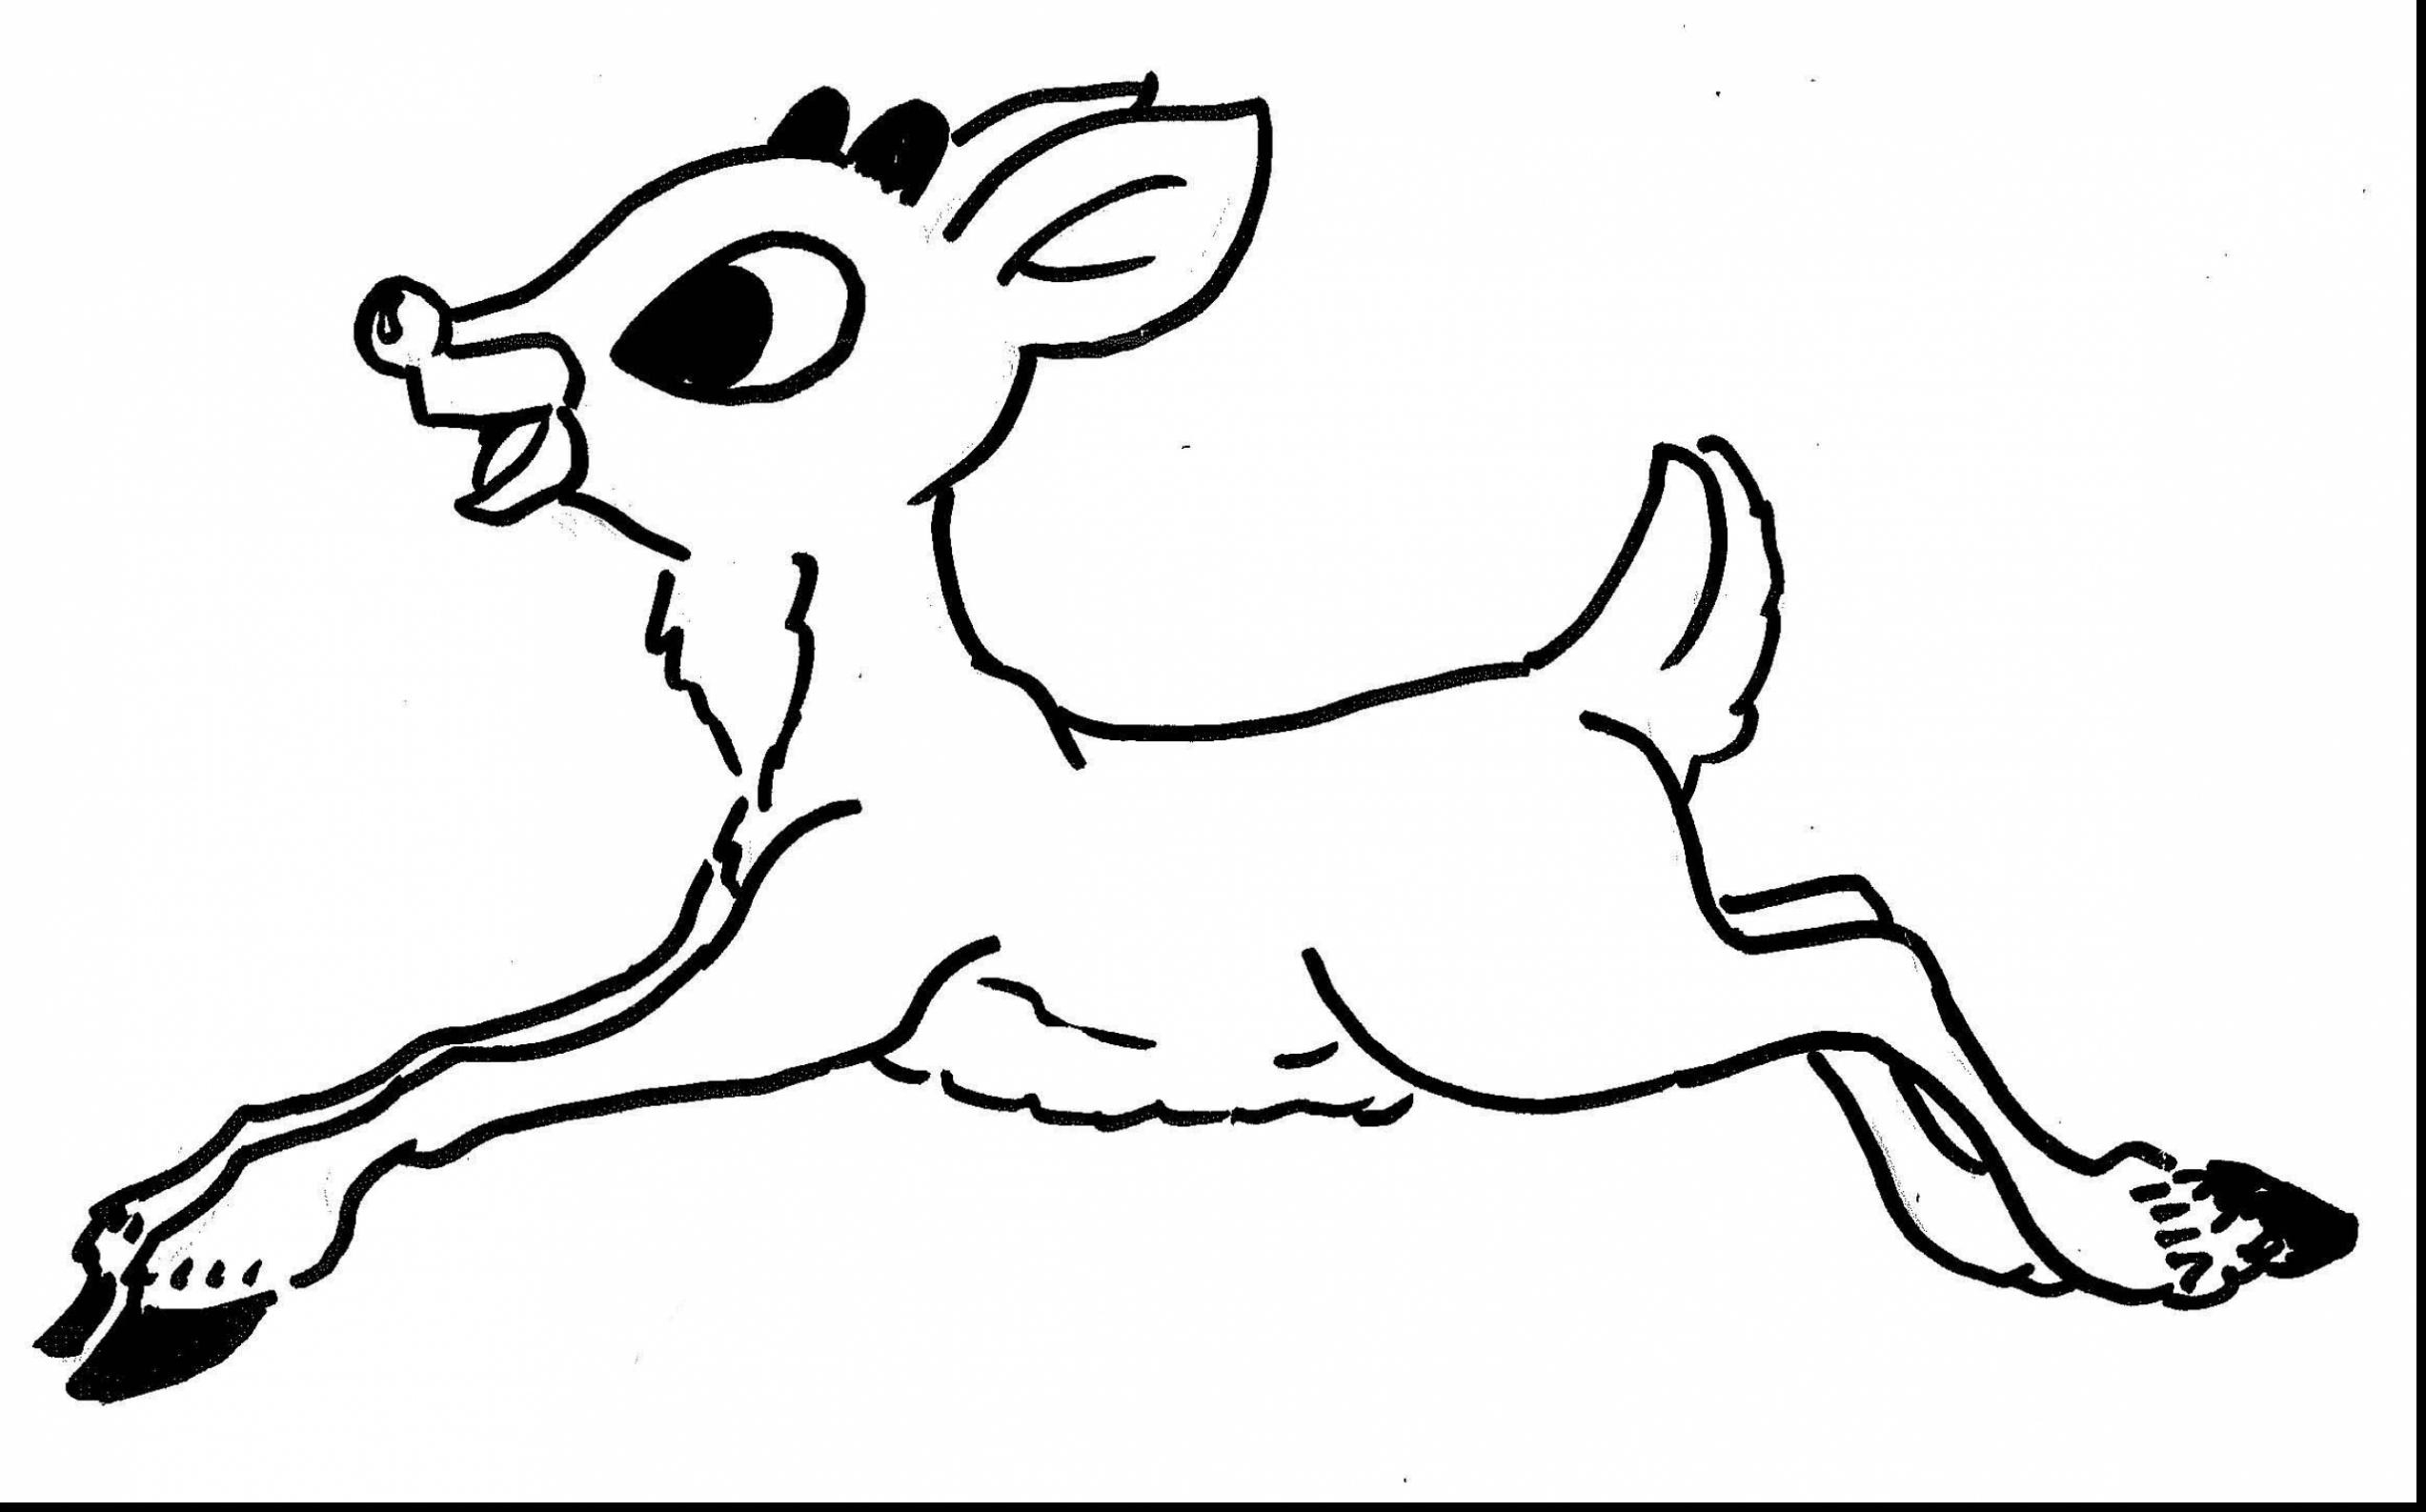 Santa Dog Coloring Pages With Rudolph The Red Nosed Reindeer To Print Free